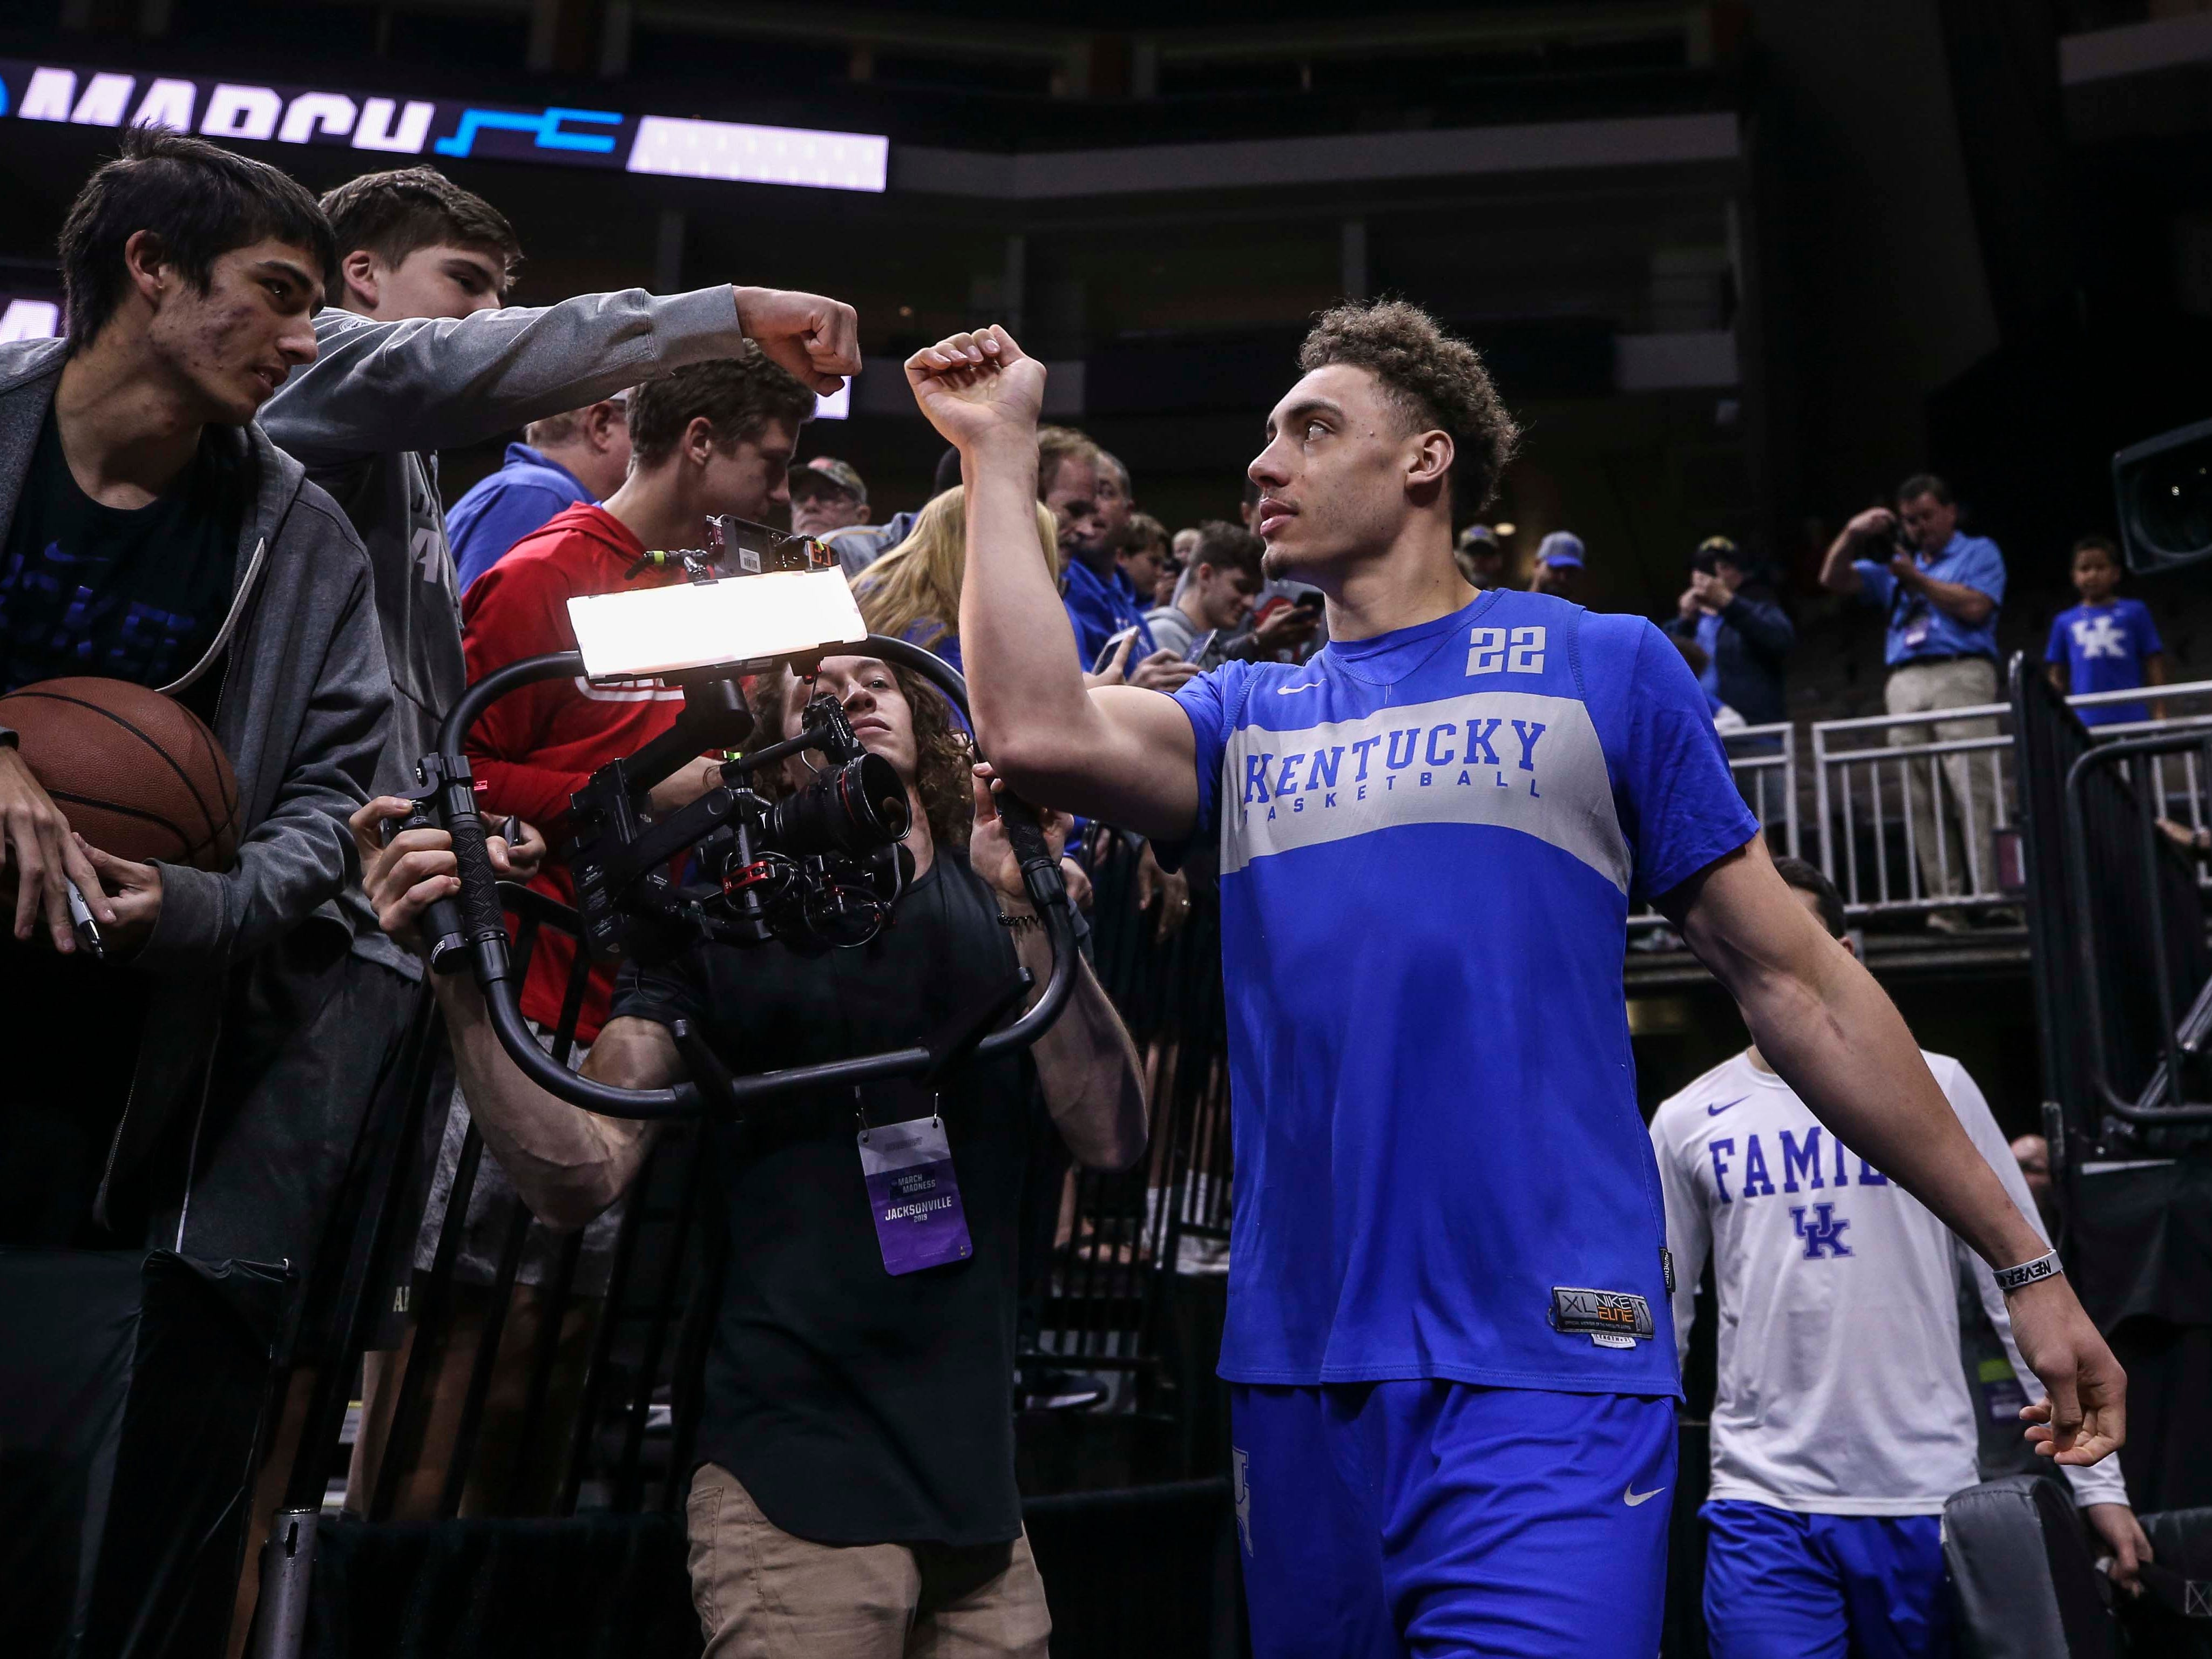 Kentucky's Reid Travis greets fans before the Wildcats' practice Wednesday afternoon in Jacksonville. March 20, 2019